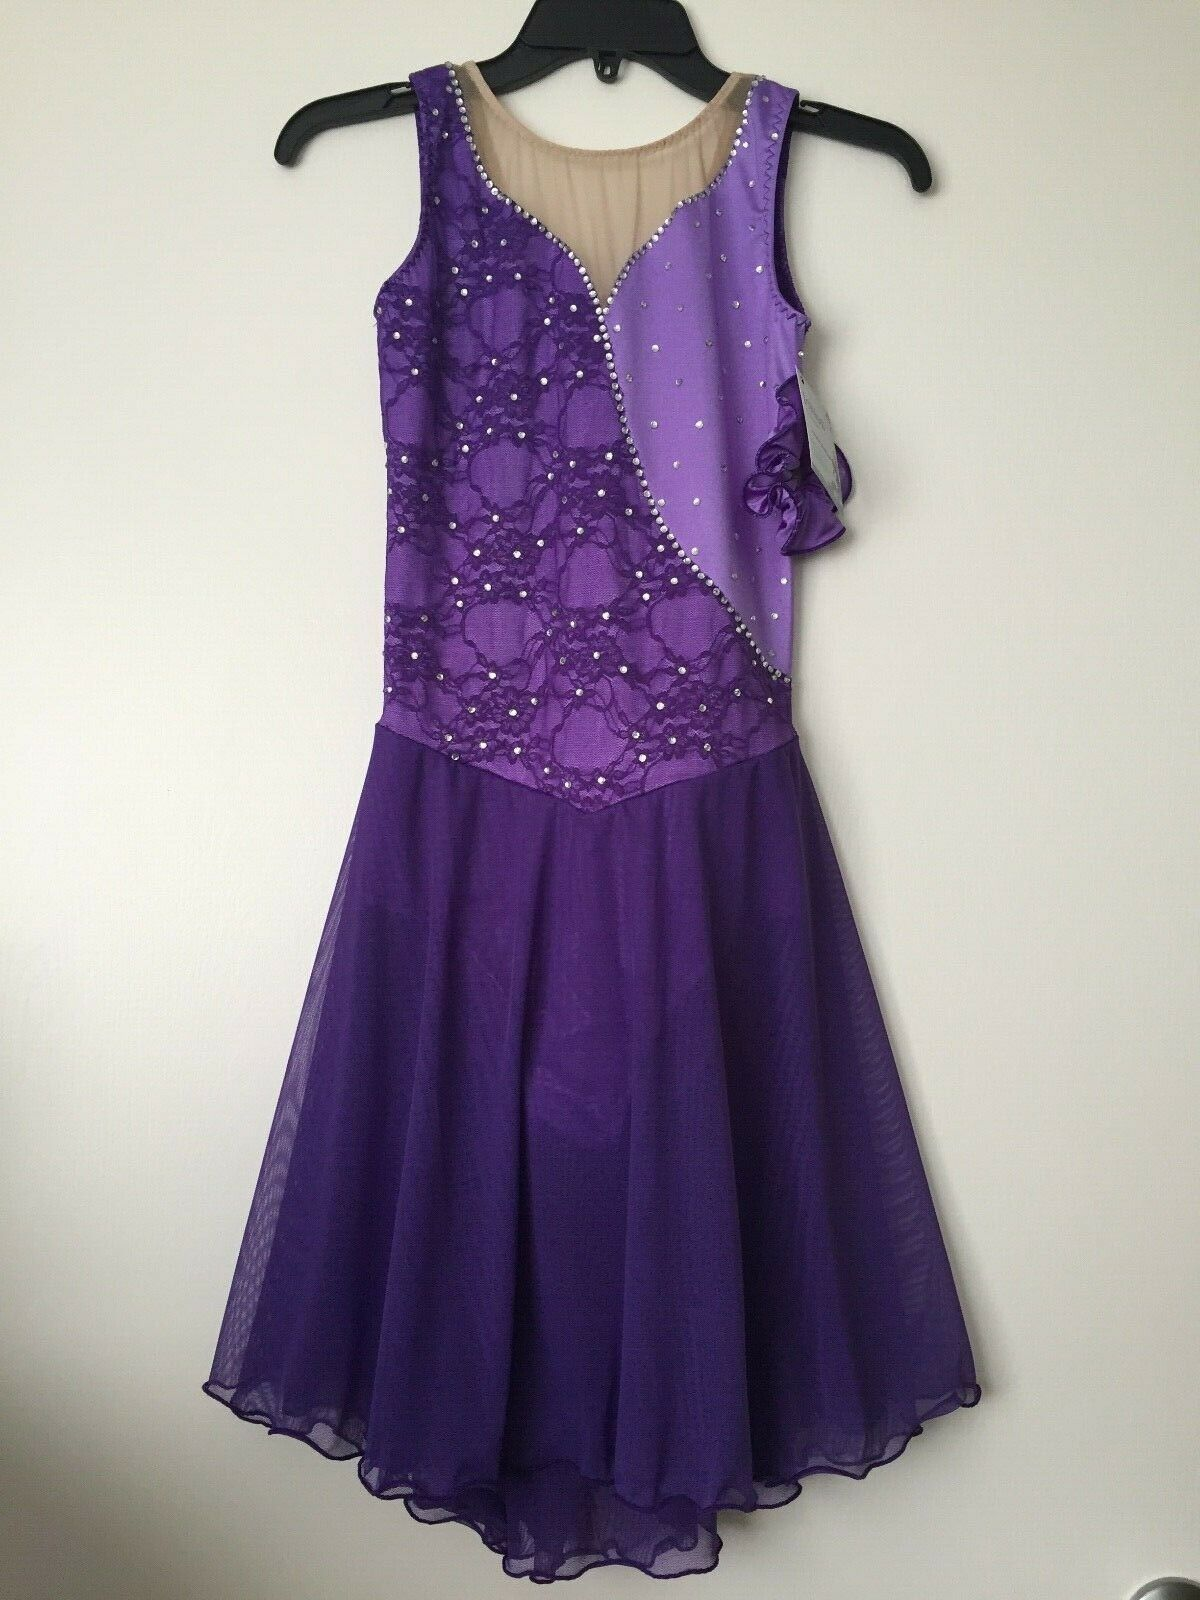 Icings NWT PURPLE ICE ROLLER DANCE SKATING  DRESS